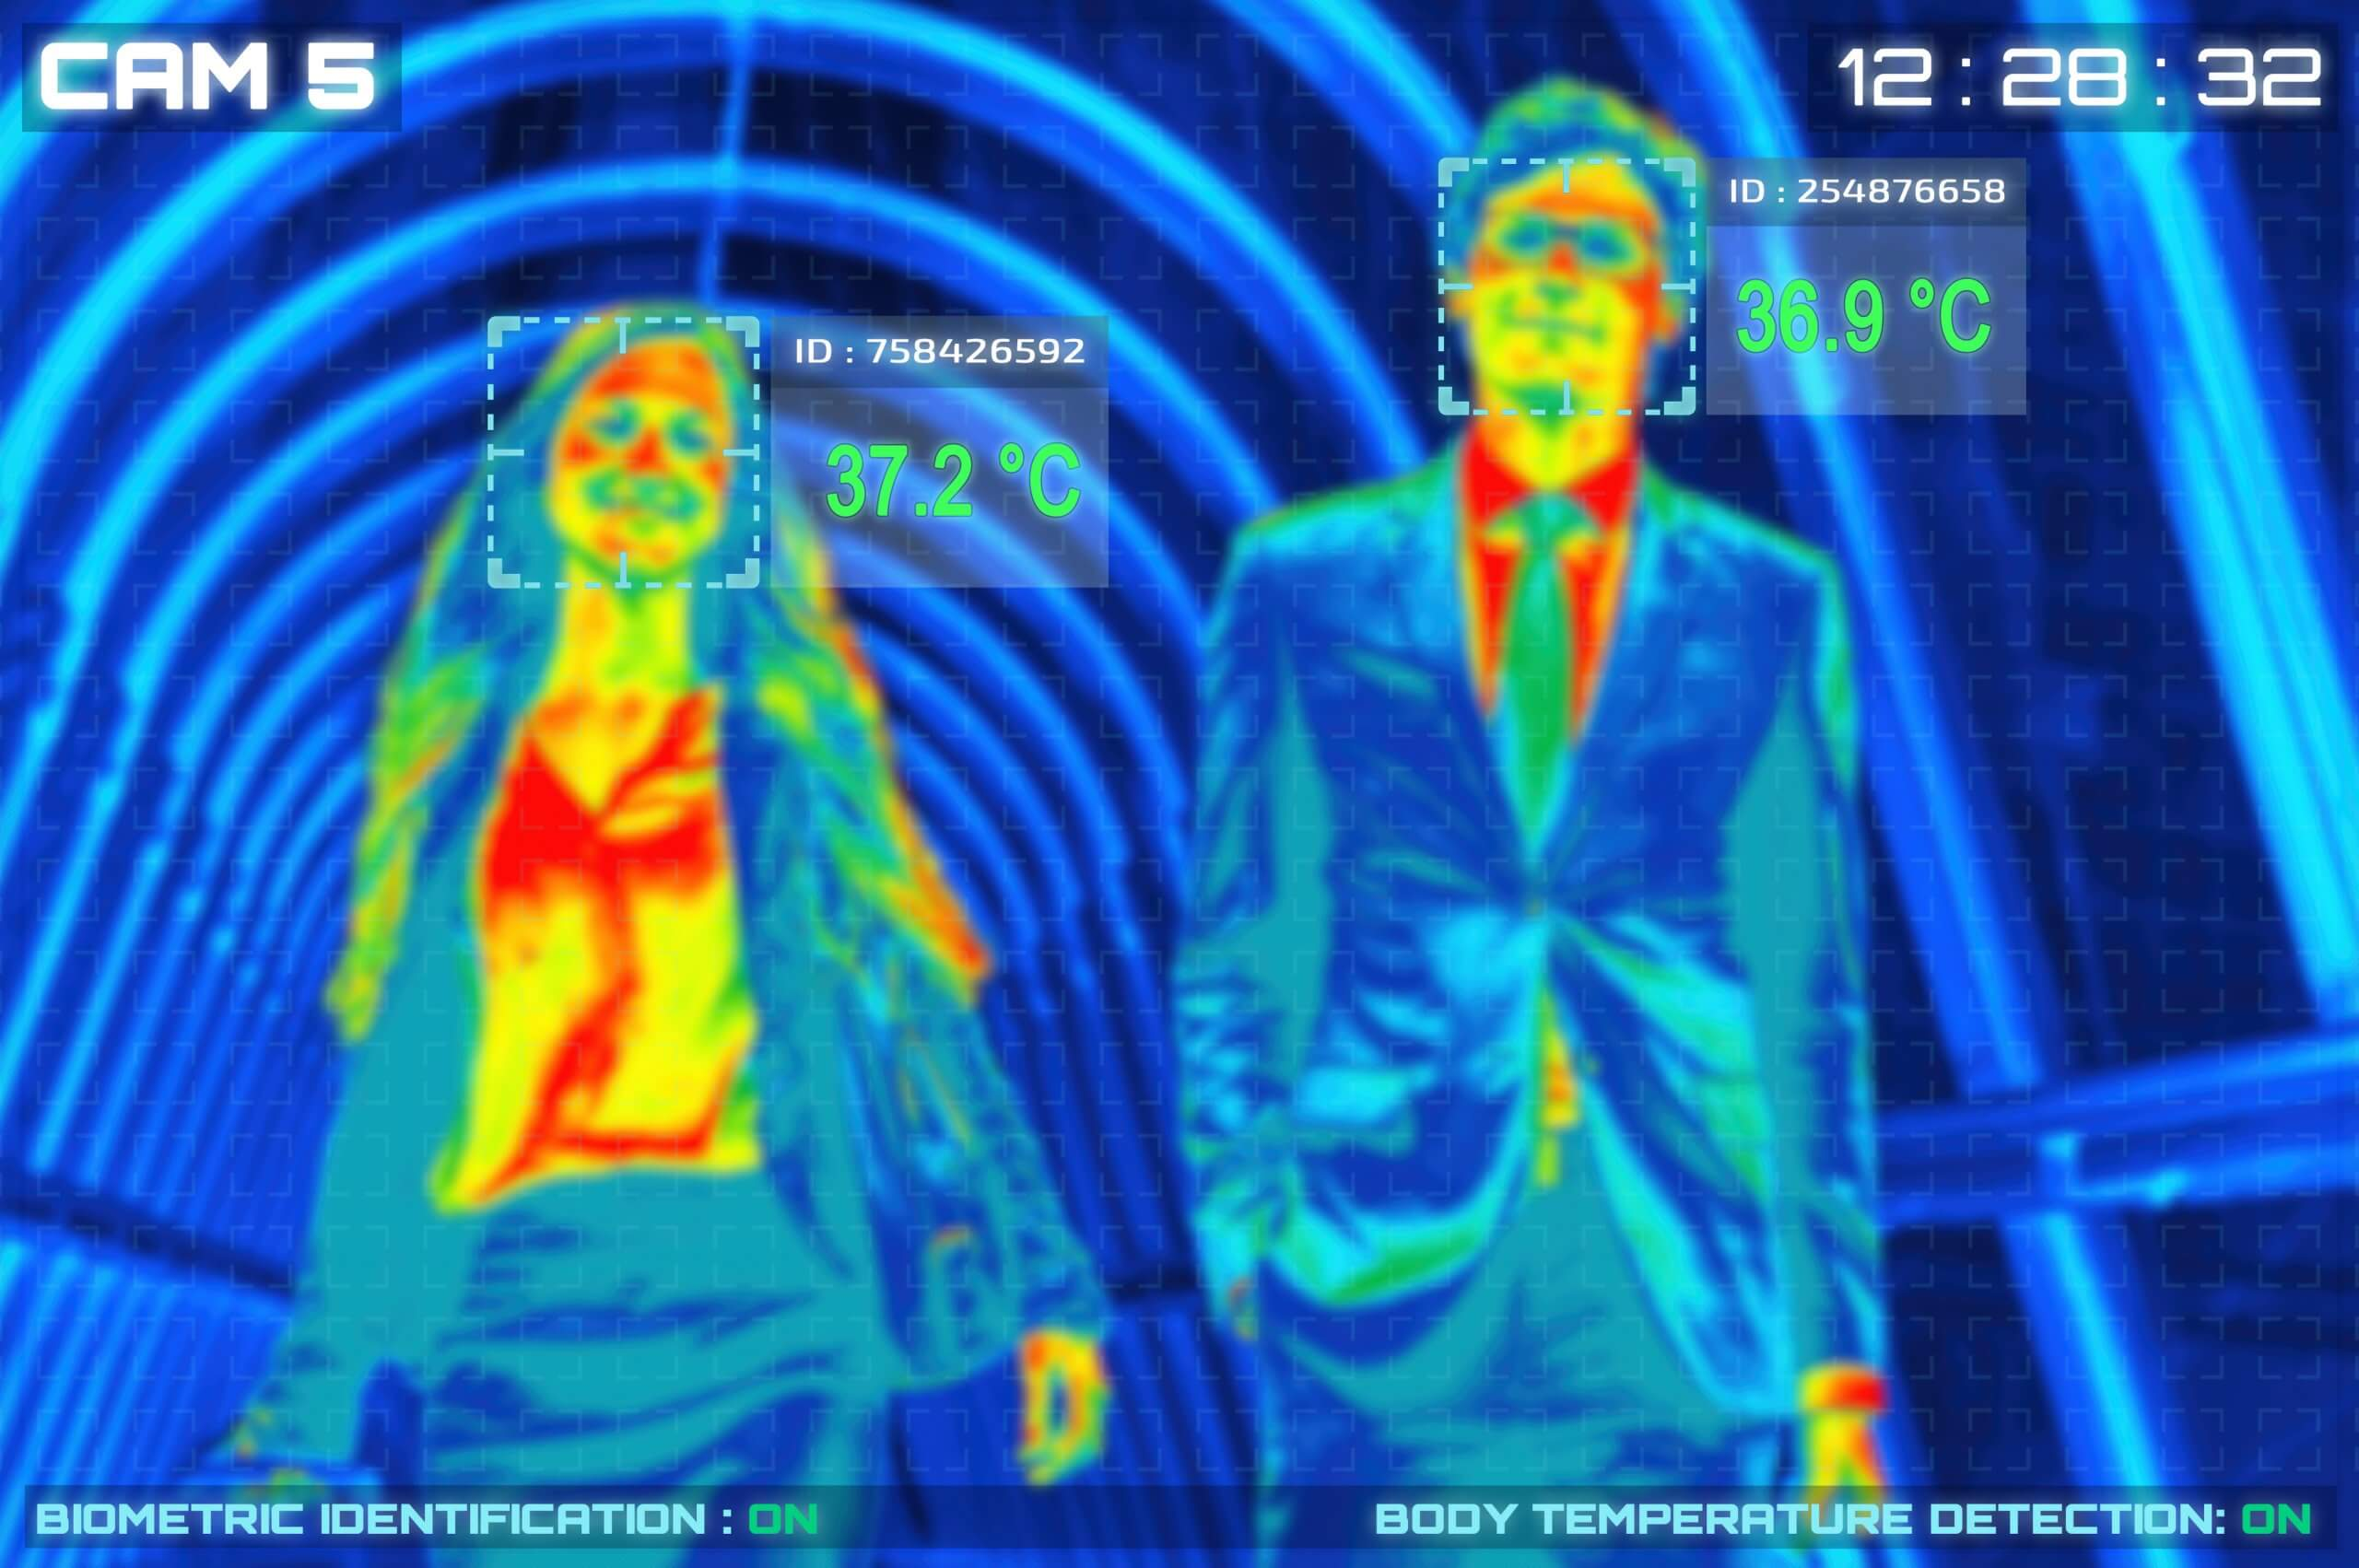 How Thermal Imaging Technology Can Help Fight COVID-19